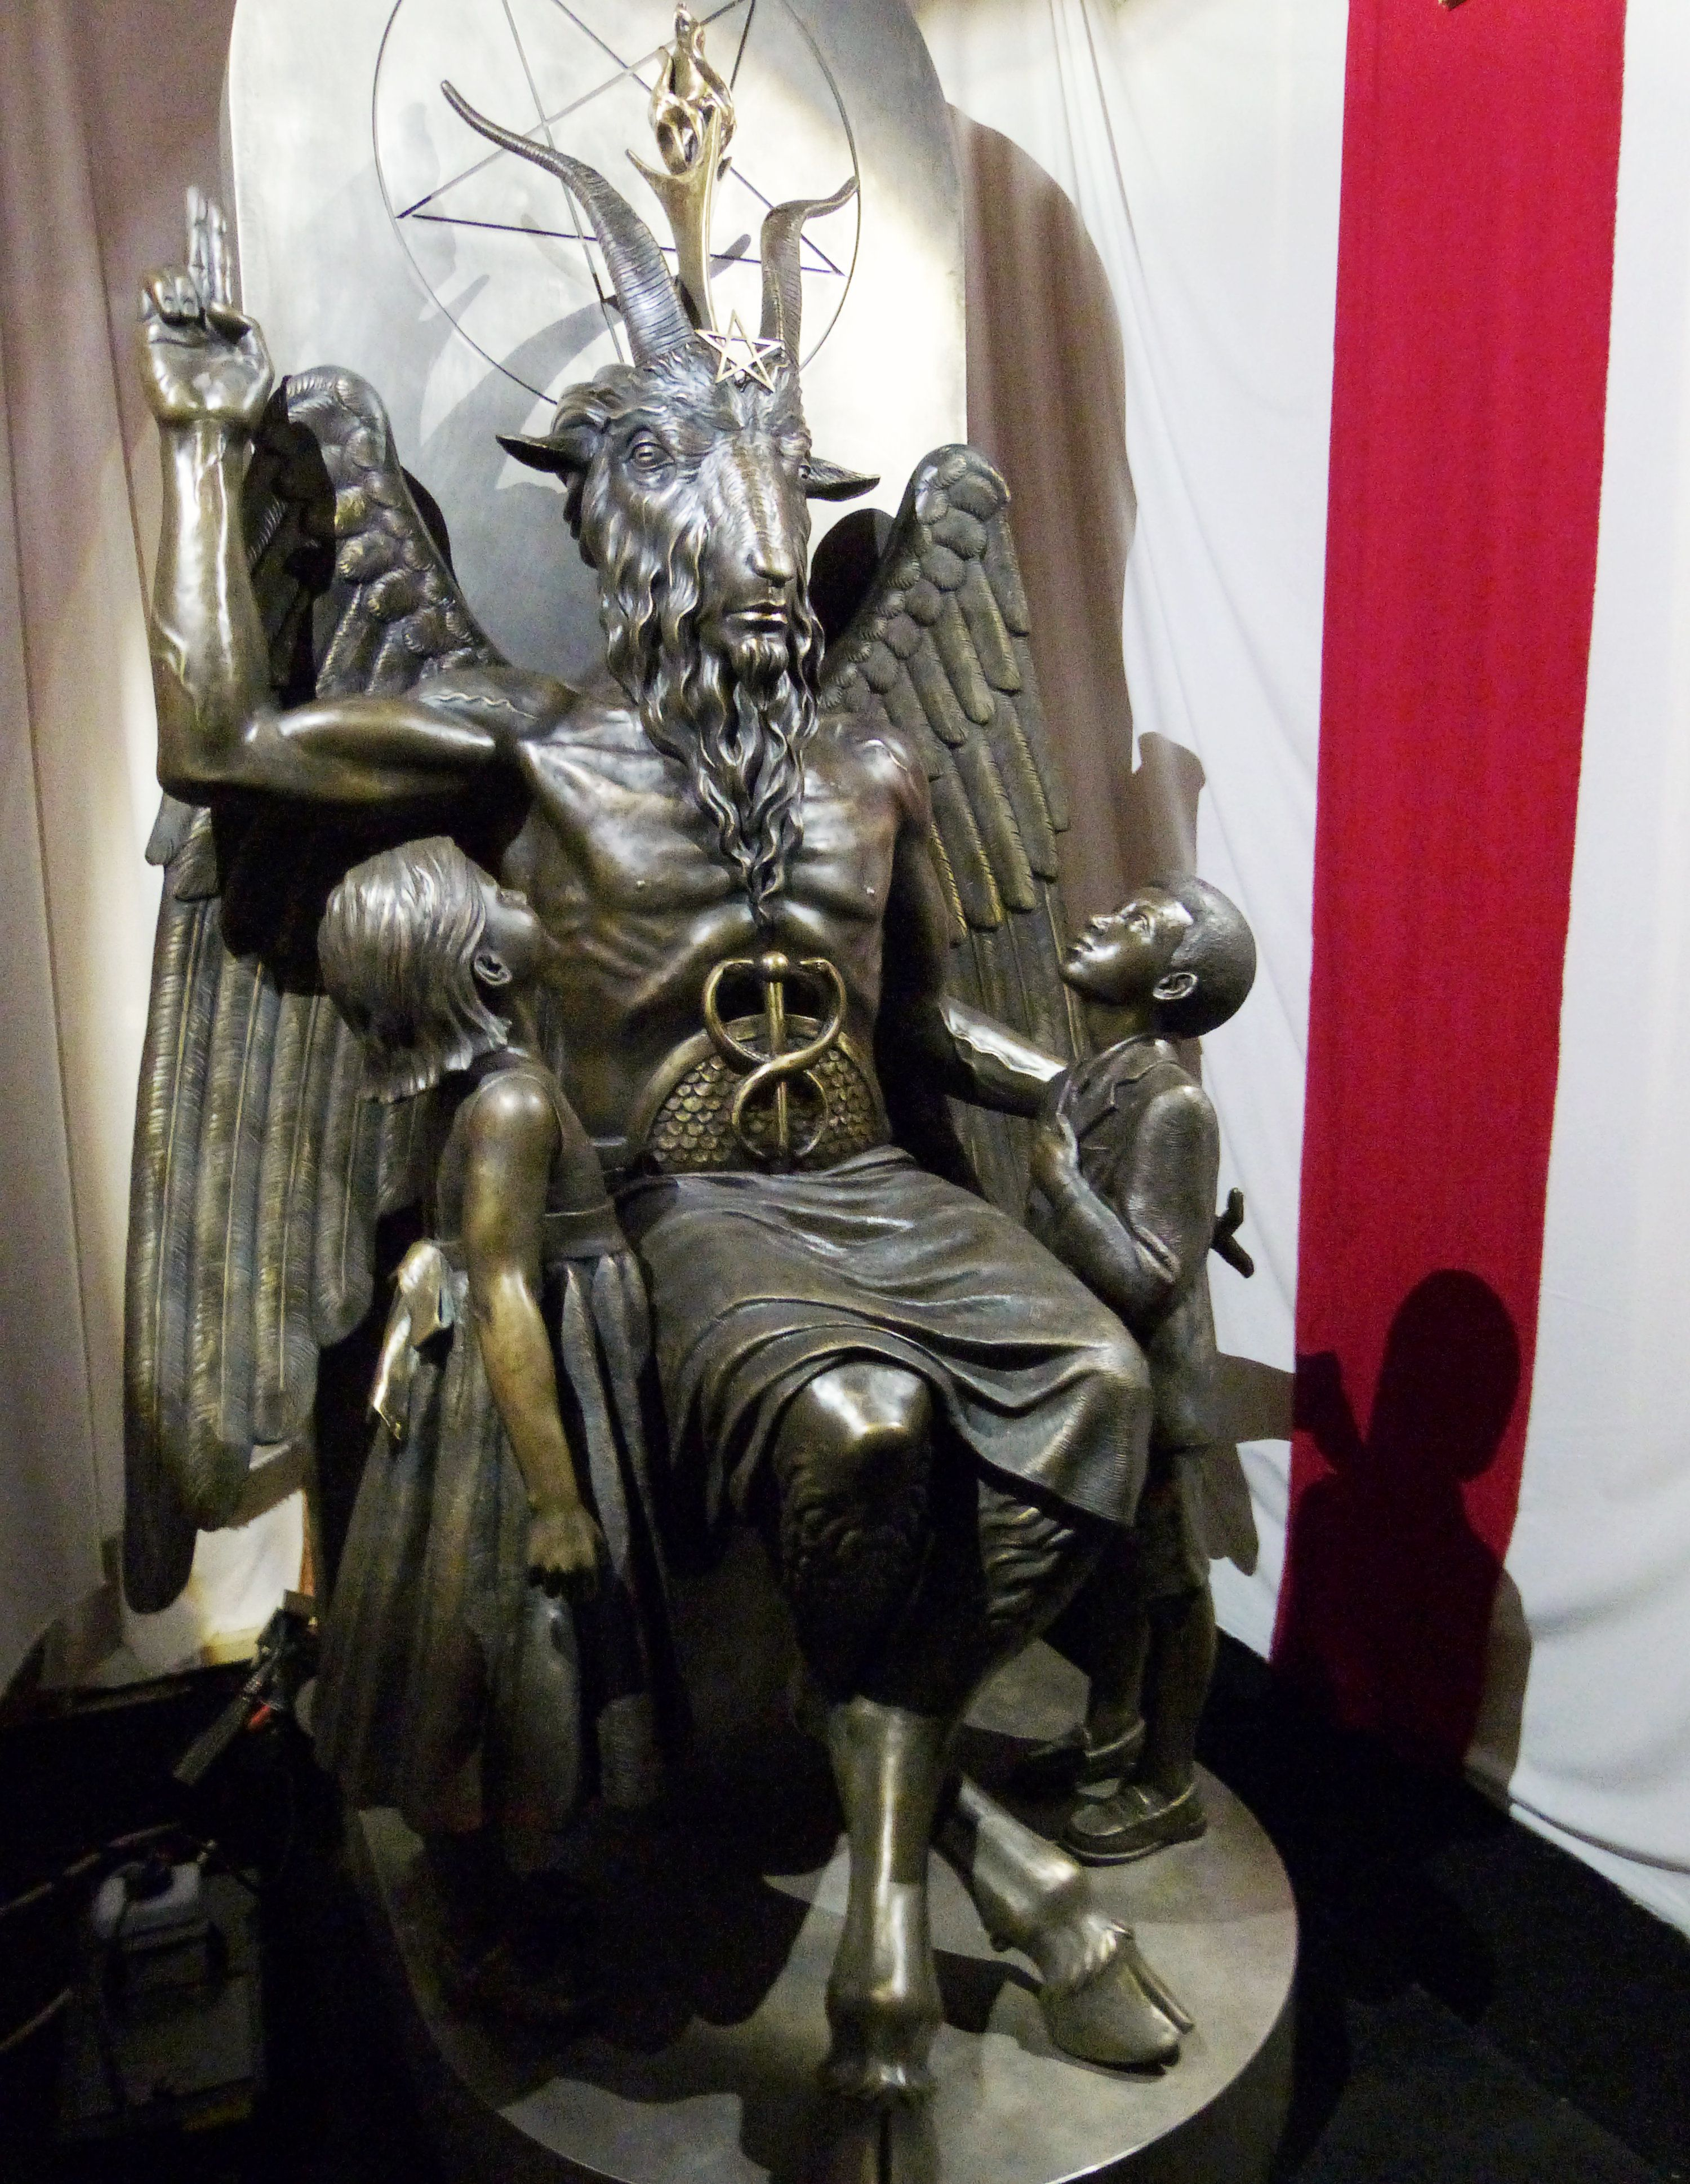 A one-ton, 7-foot (2.13-m) bronze statue of Baphomet -- a goat-headed winged deity that has been associated with satanism and the occult -- is displayed by the Satanic Temple during its opening in Salem, Massachusetts, U.S. September 22, 2016.  REUTERS/Ted Siefer